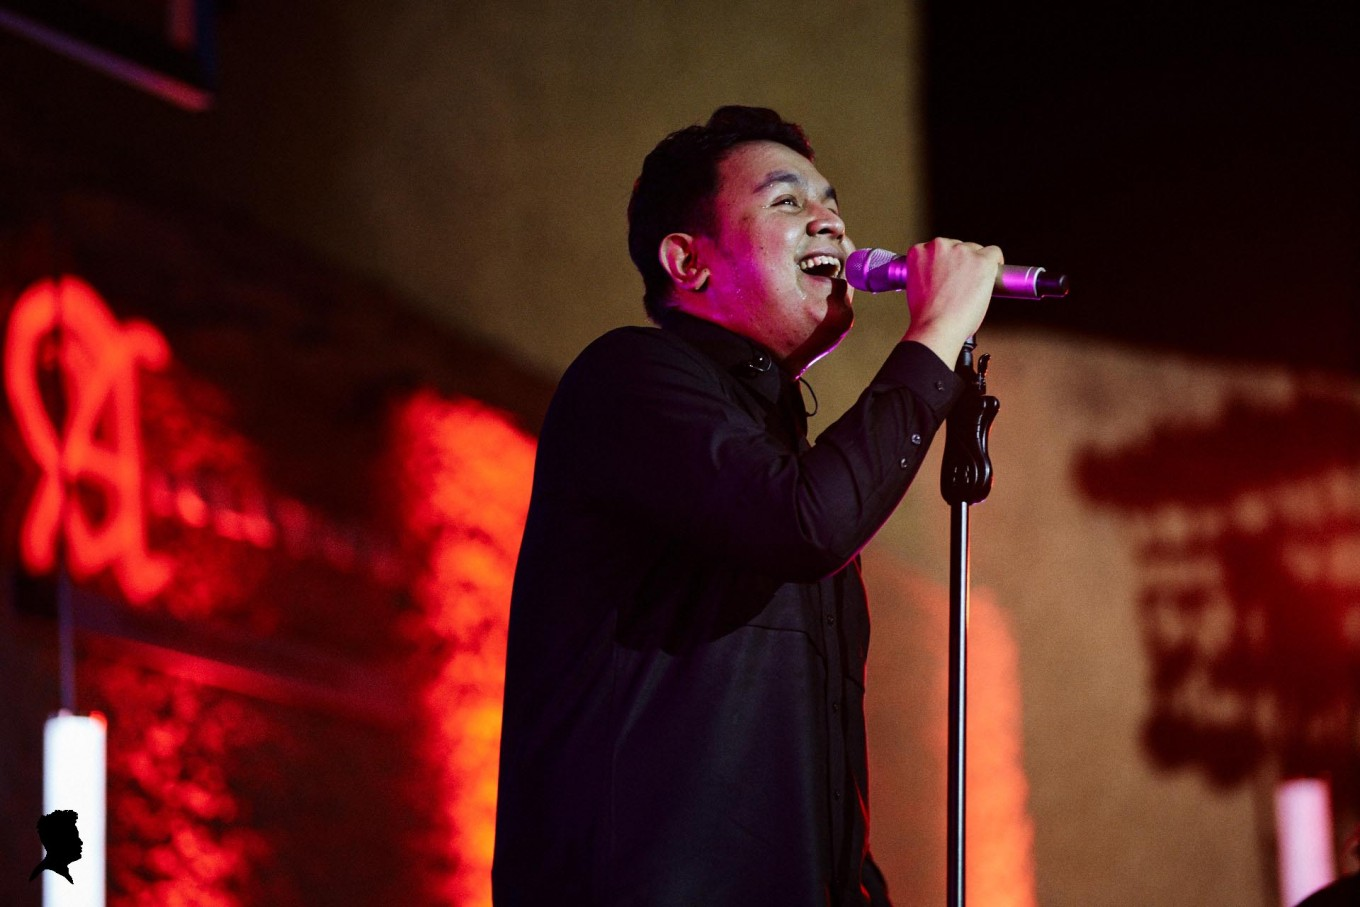 Indonesian singer Tulus to hold debut concert in Malaysia